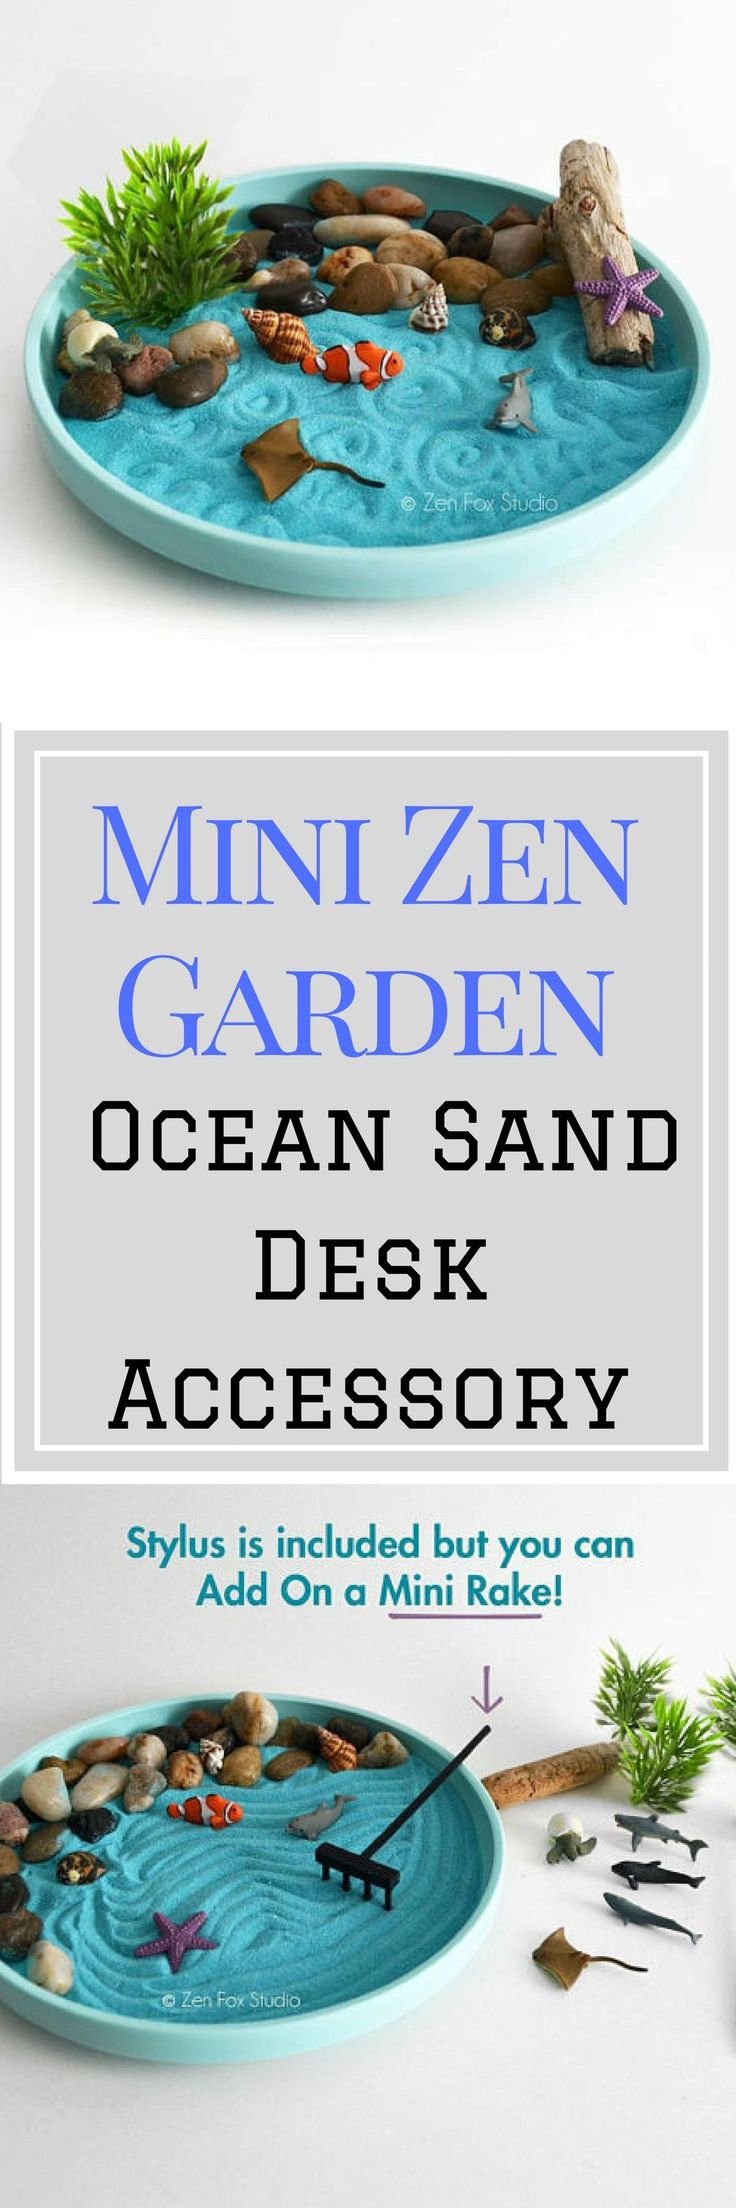 Miniature desktop zen garden featuring mini ocean figurines! With this  DIY Zen Kit you can create your own little ocean scene. Leave just the  sand or arrange the pebbles in the sand to create a little beach for the  driftwood and sea shells. Create designs in the sand with the stylus  and arrange the miniatures any way you like! Perfect gift for coworkers, loved ones, or yourself! Mini Zen Garden // Ocean  Sand Garden Desk Accessory // DIY Kit // Driftwood Beach Tabletop  Decor #ad…